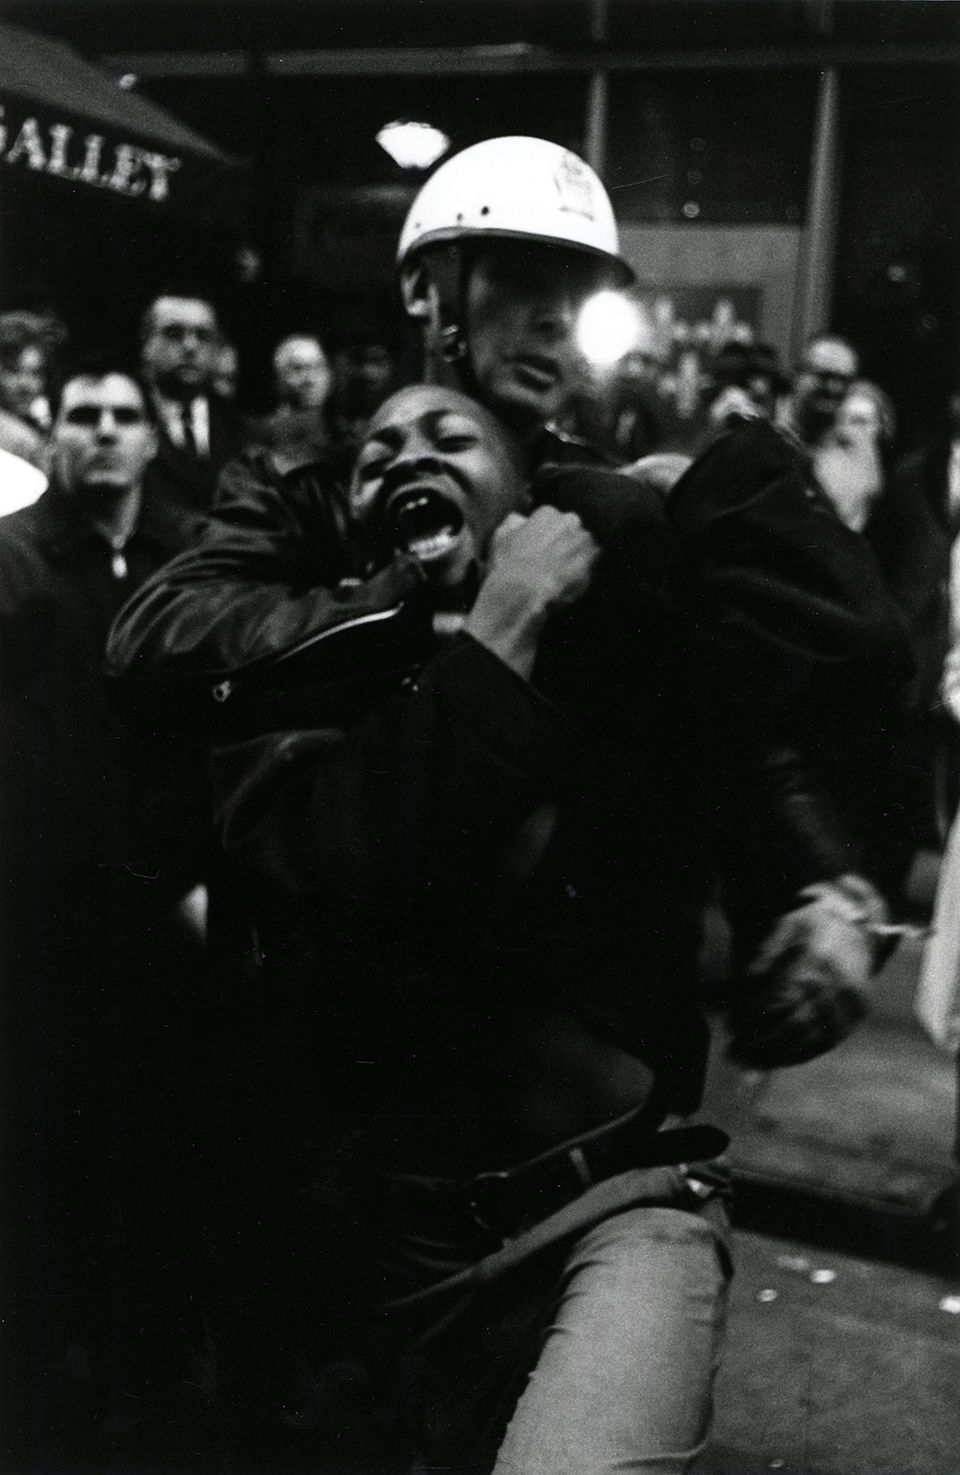 Copyright Danny Lyon / Magnum Photos, Arrest of Taylor Washington in Atlanta (Leb's Restaurant, from Memories of the Civil Rights Movement, 1963